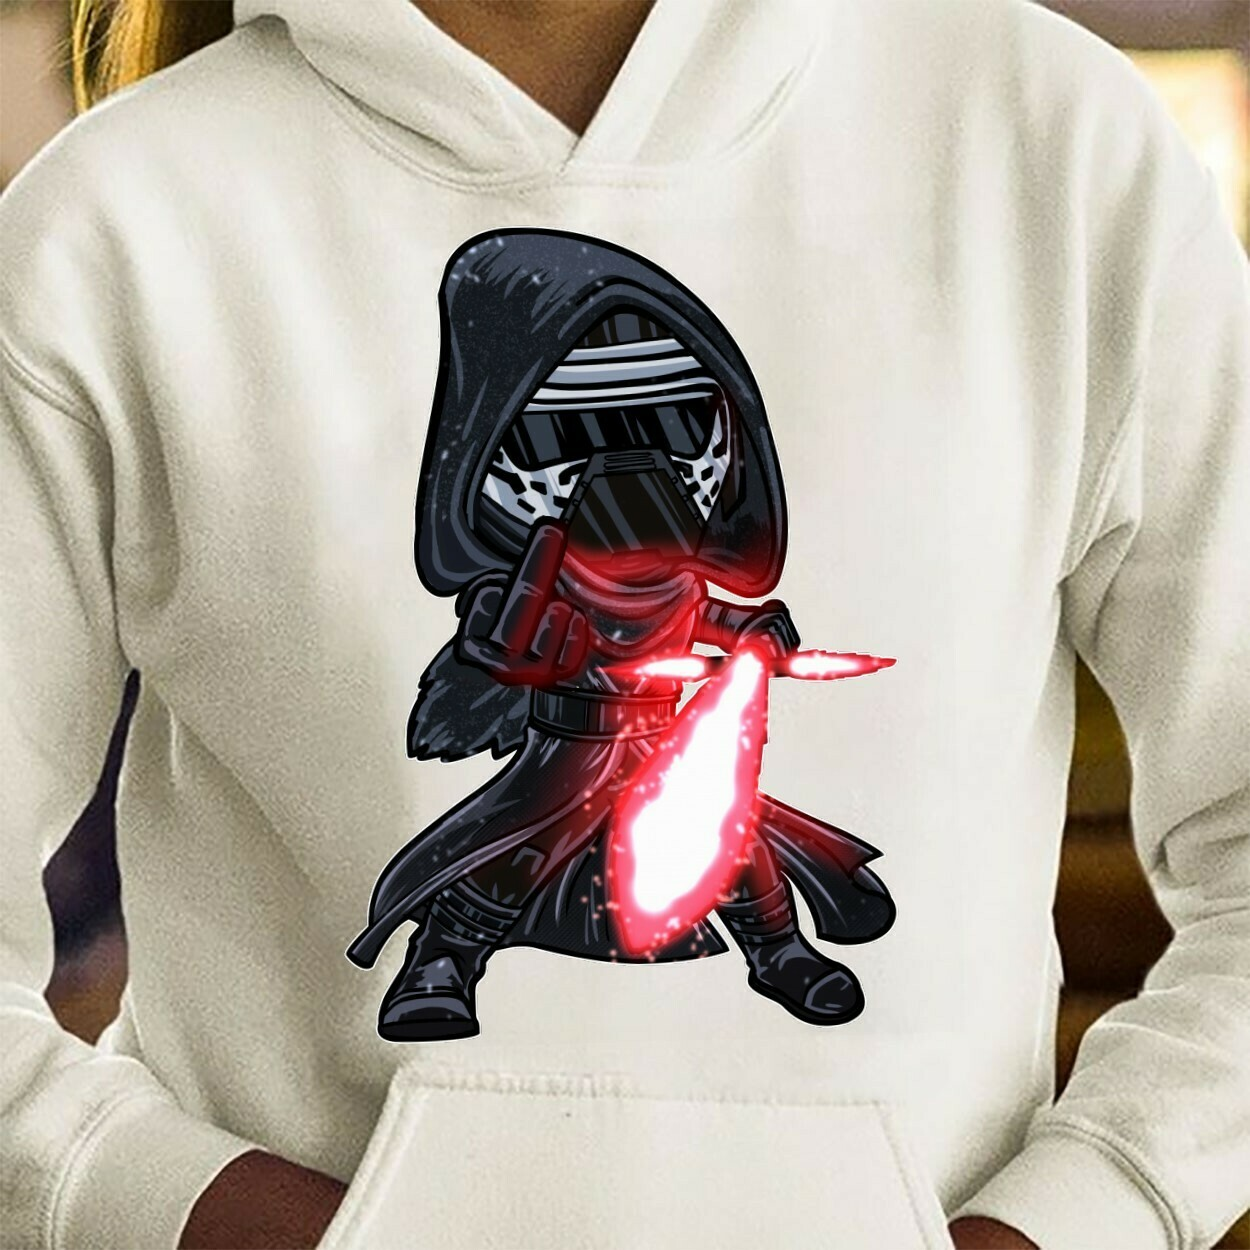 Star Wars The Force Awakens Men's Kylo Ren Darth Maul Darth Vader Kylo Ren Middle Finger The Last Jedi The Rise of Skywalker Licensed Shirt Long Sleeve Sweatshirt Hoodie Jolly Family Gifts